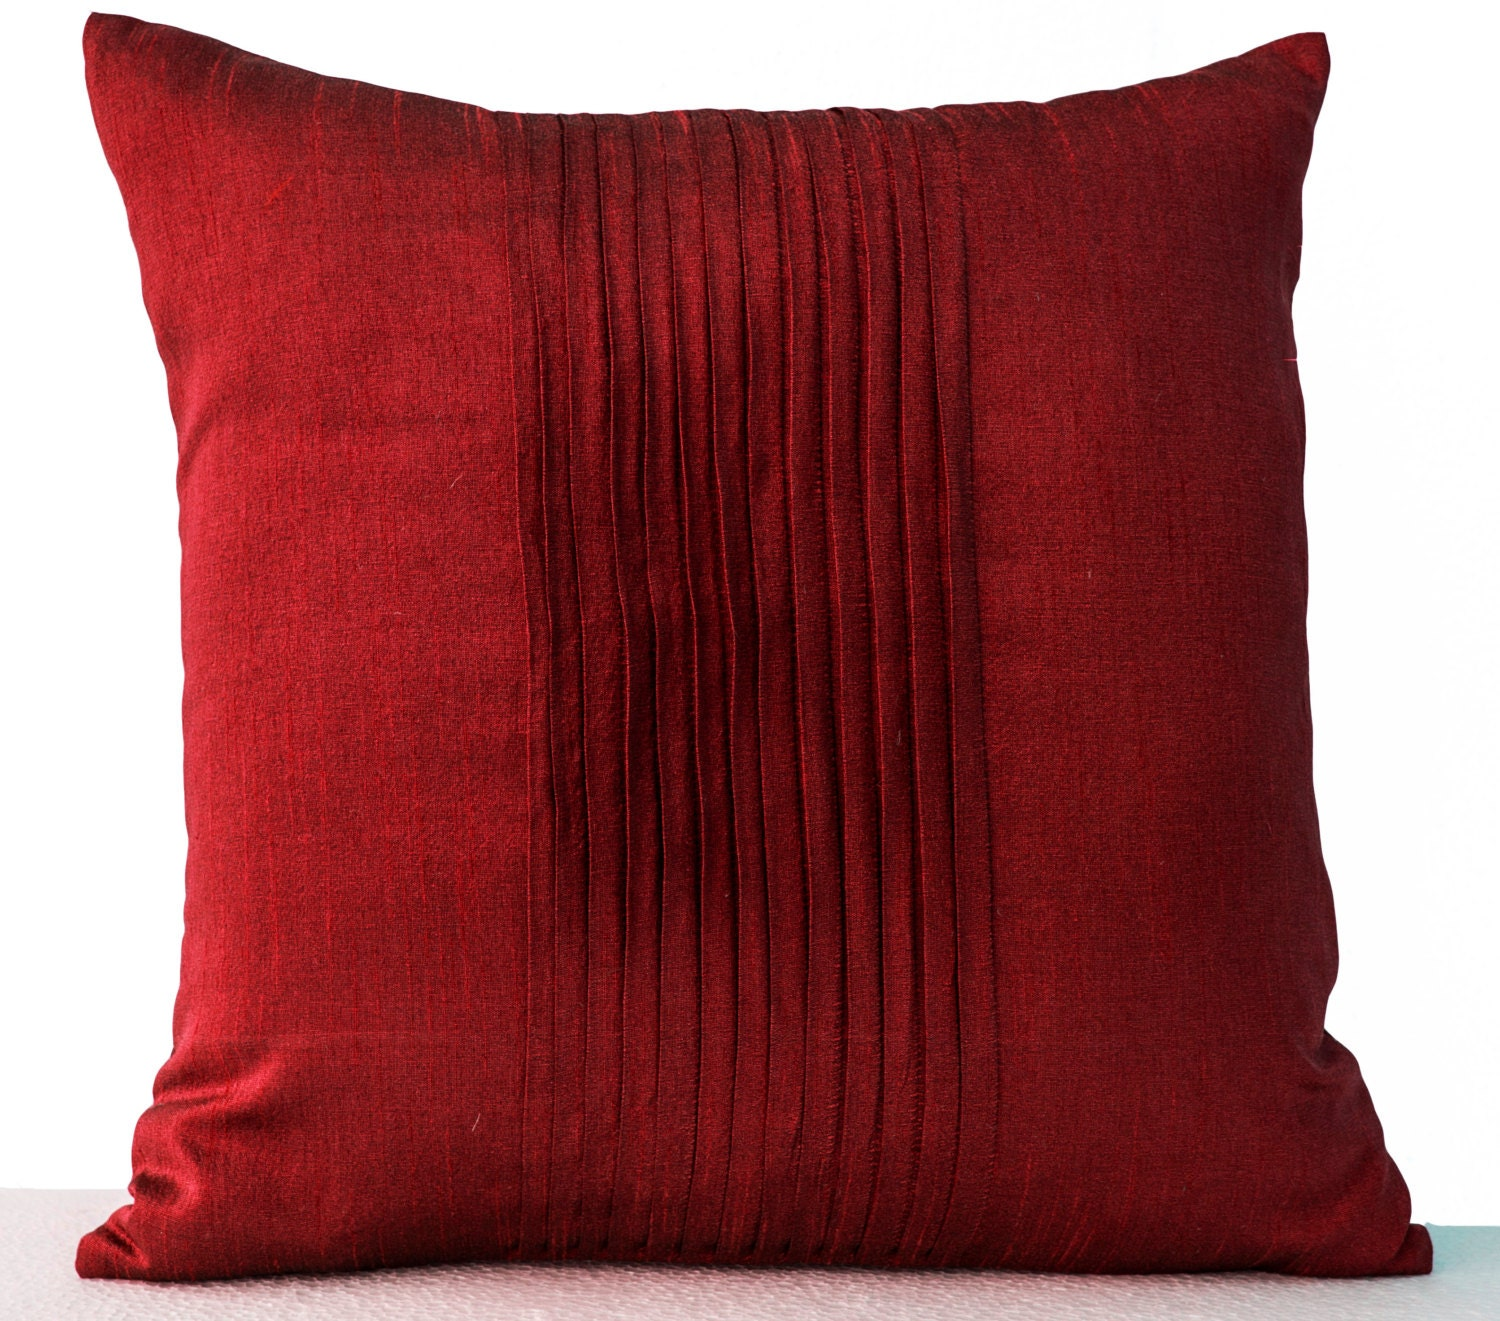 Red Silk Decorative Pillows : Throw pillows in red art silk Attractive cushion in rippled